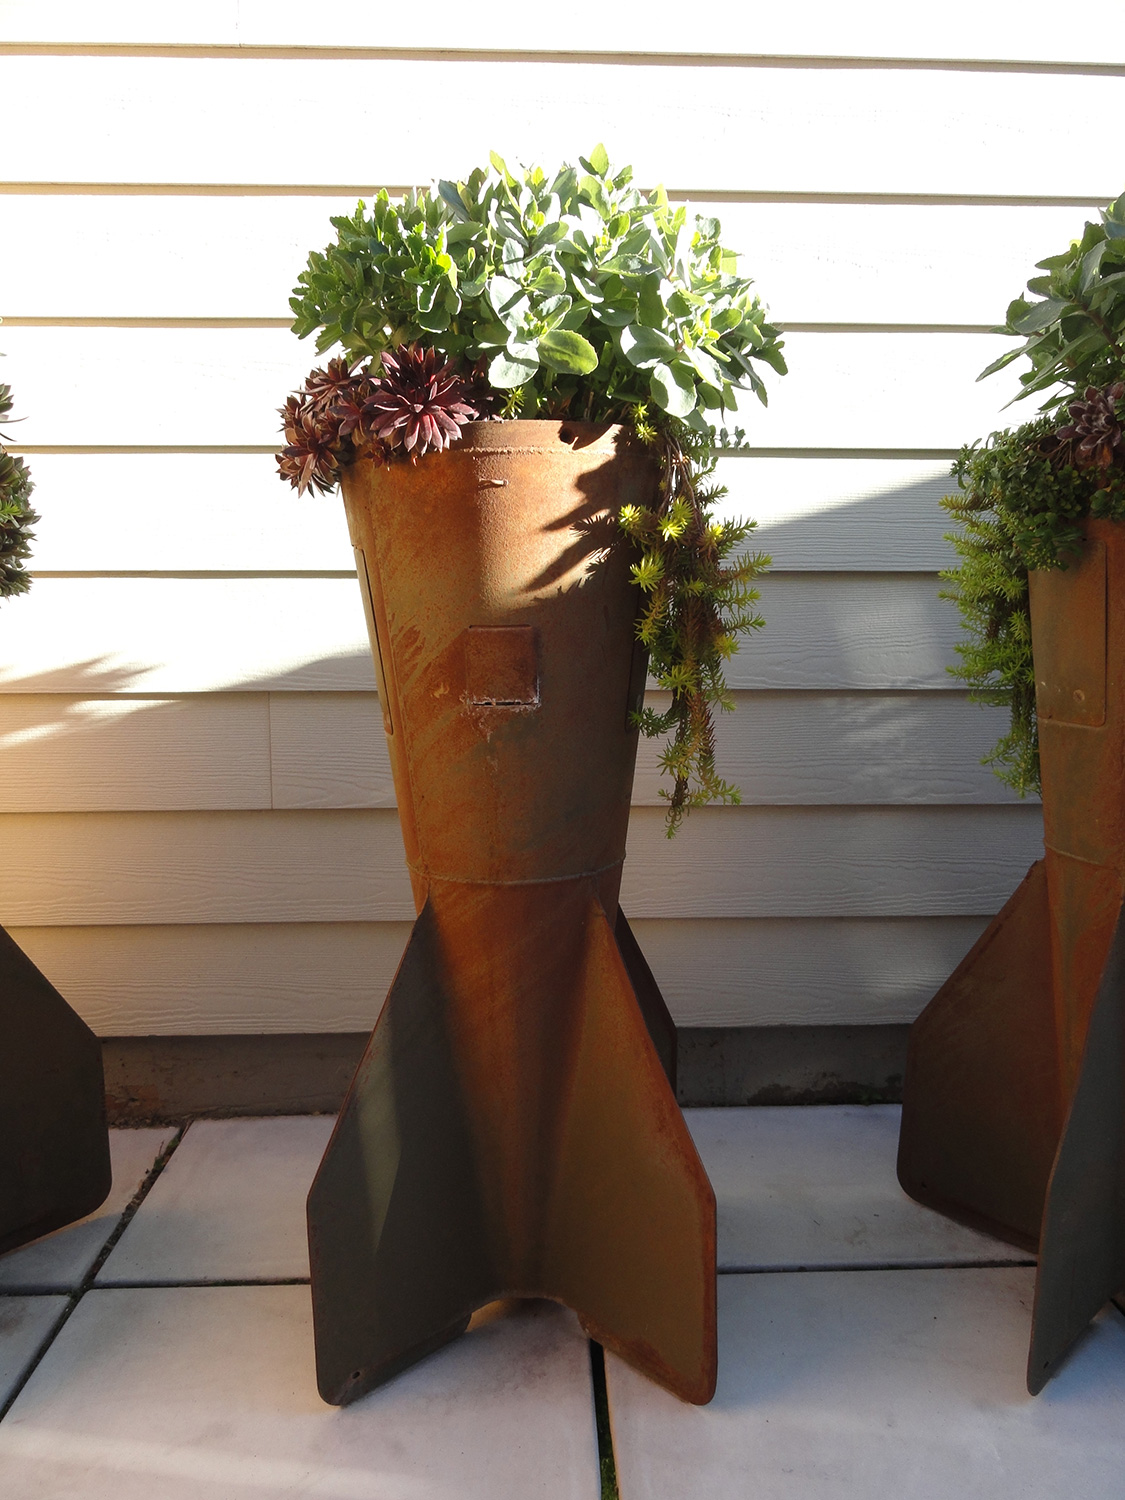 Second World War salvaged 500 lb. bomb-tails modified for succulent container gardens.